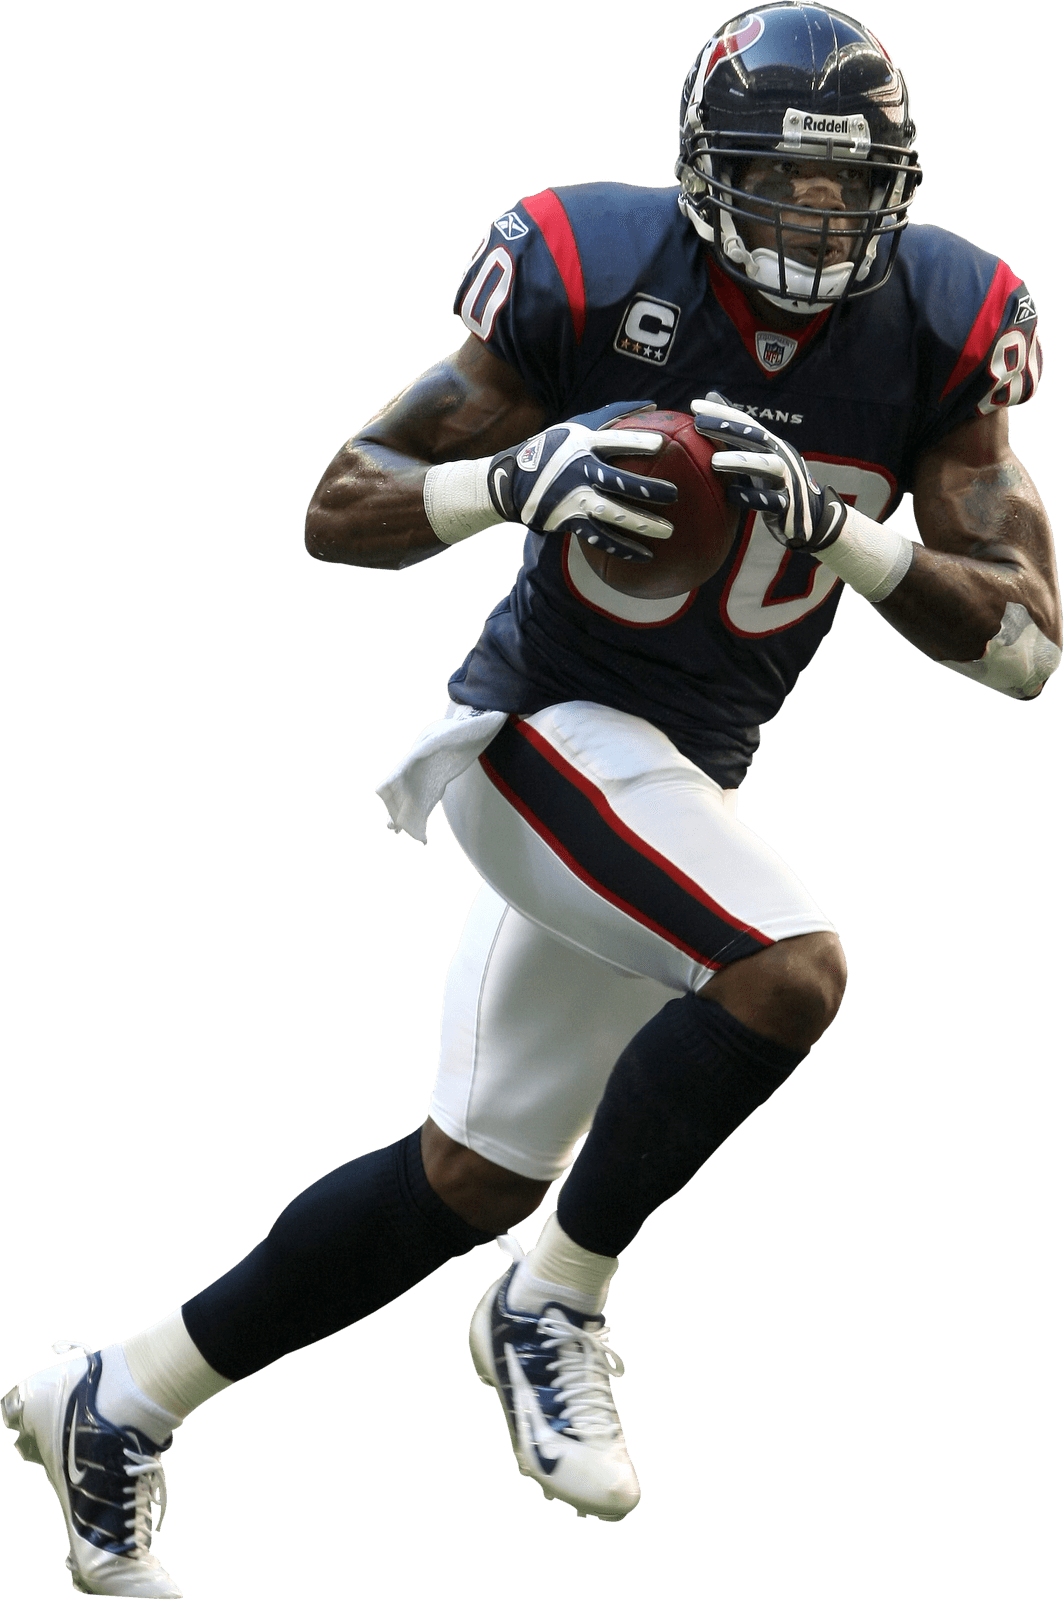 Texans football clipart black and white download Houston Texans Player transparent PNG - StickPNG black and white download